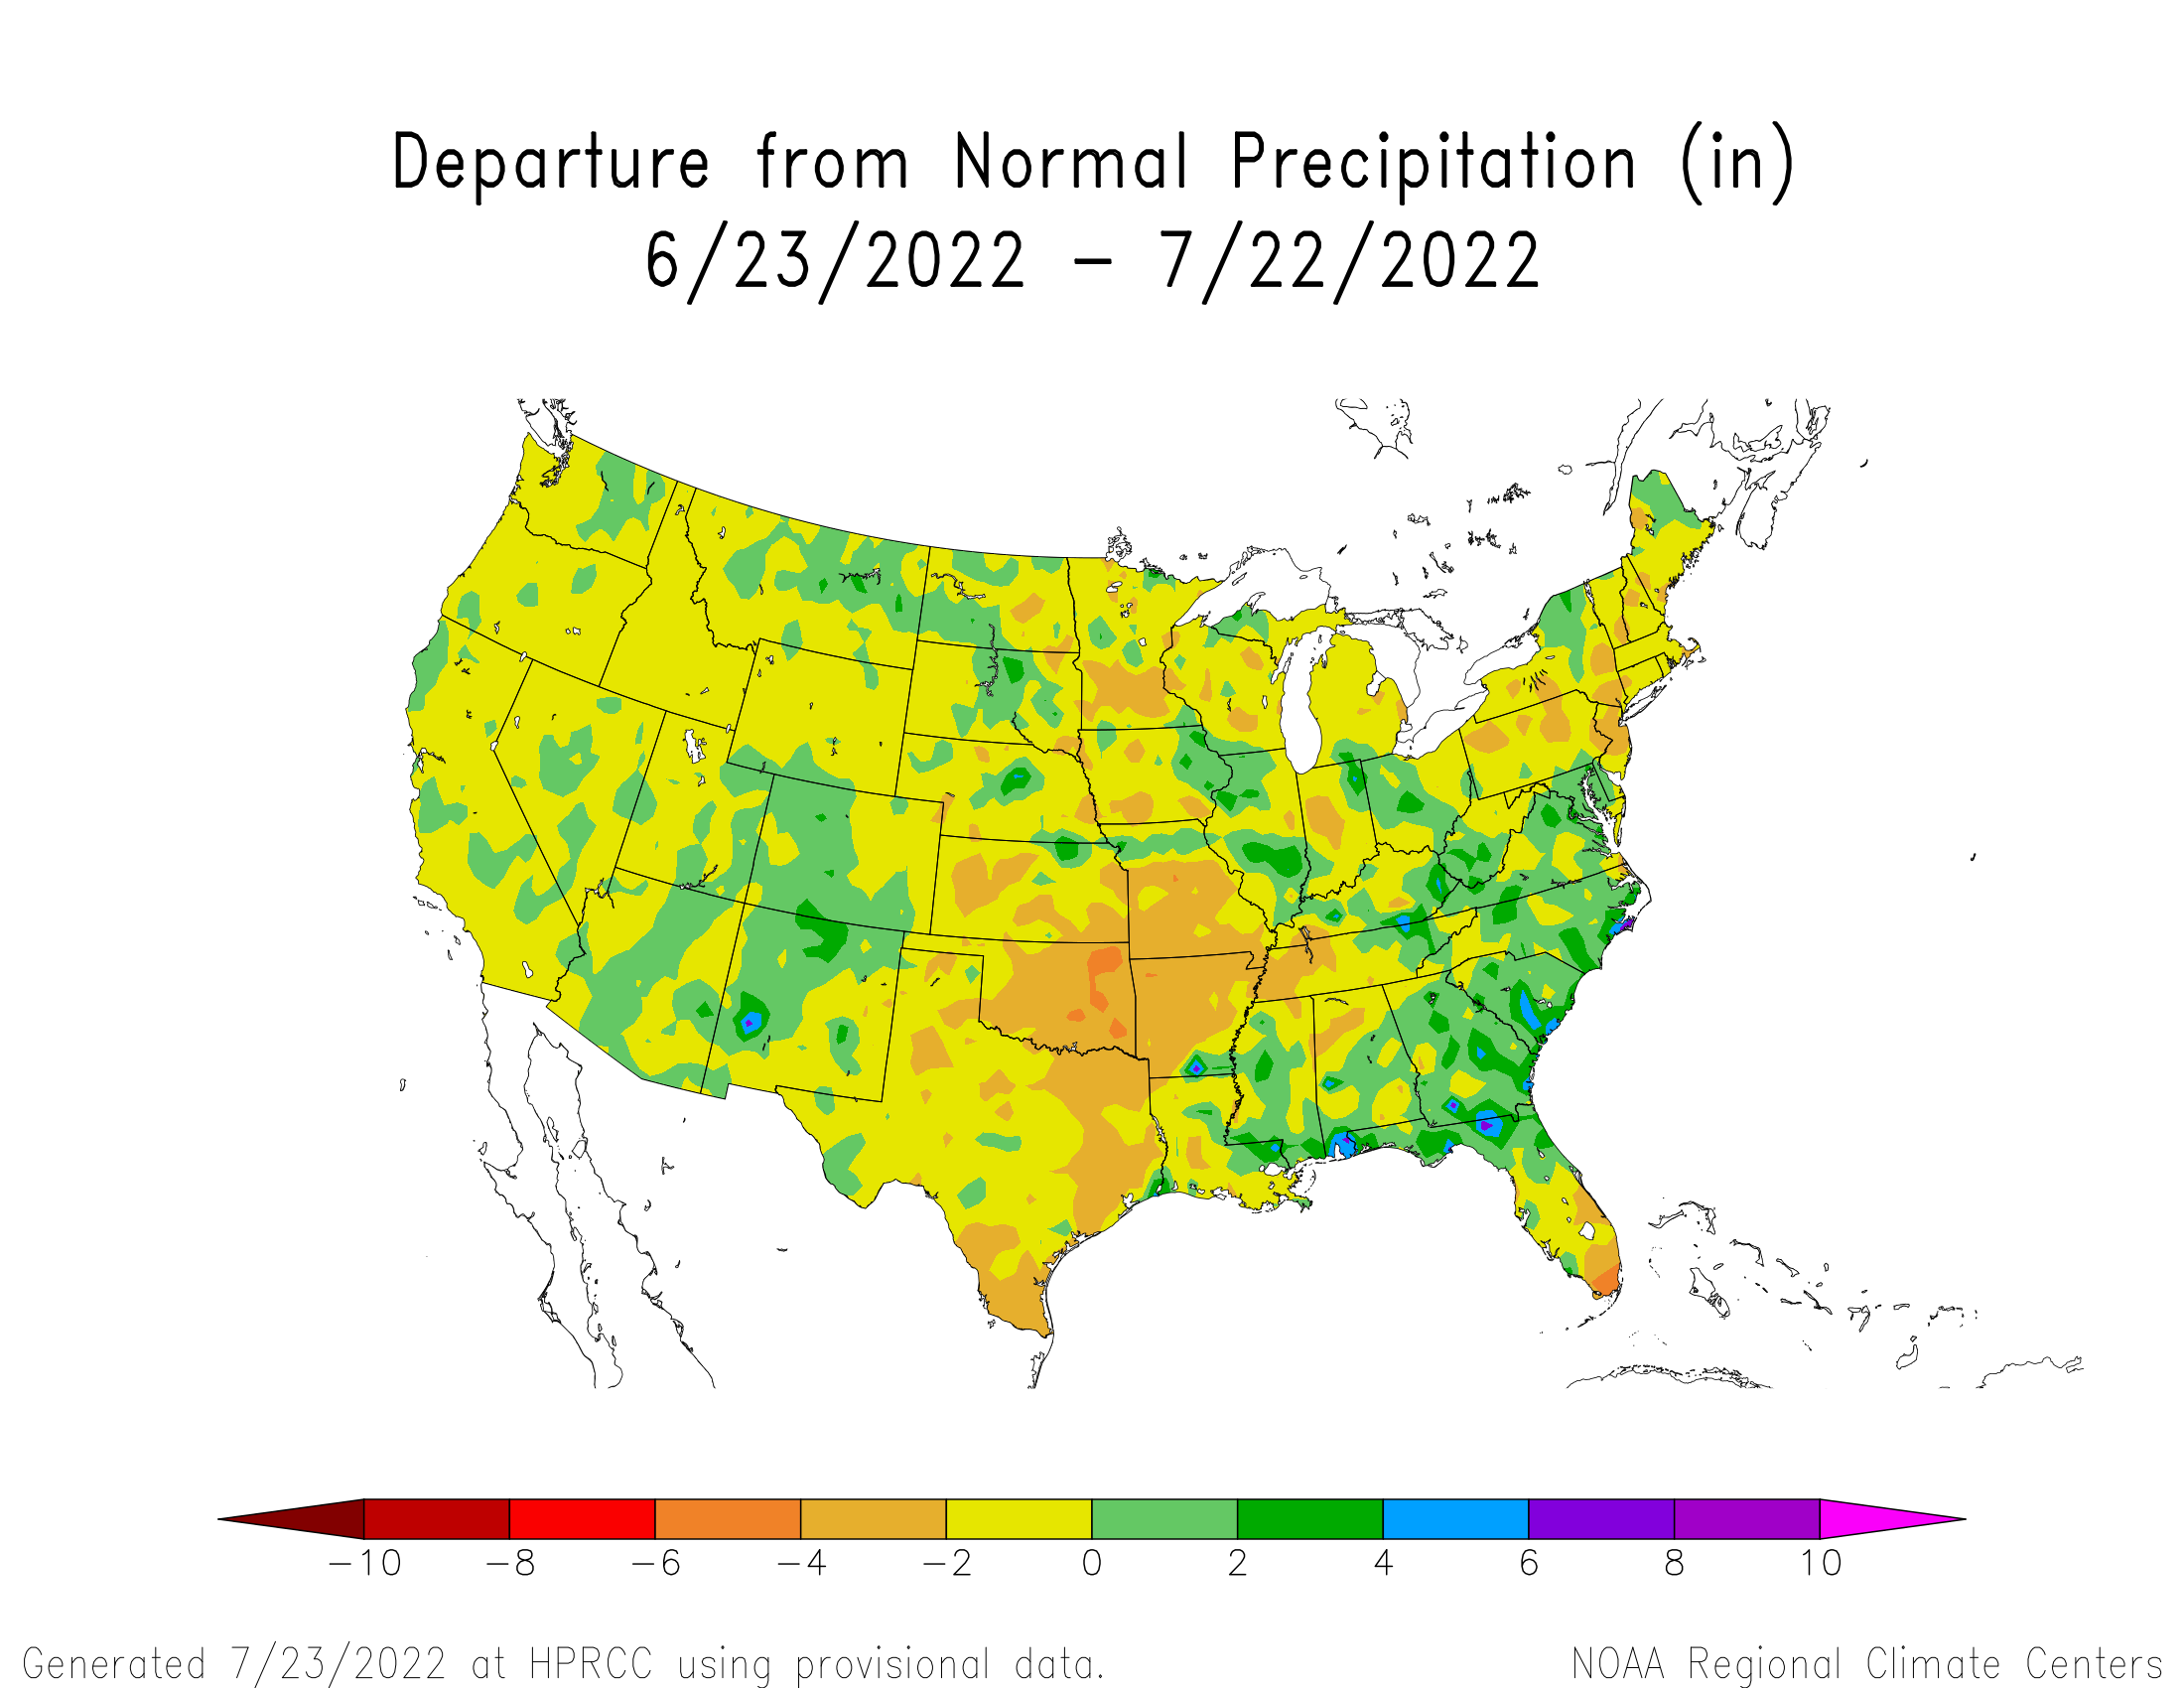 30-day Precipitation Departure from Normal